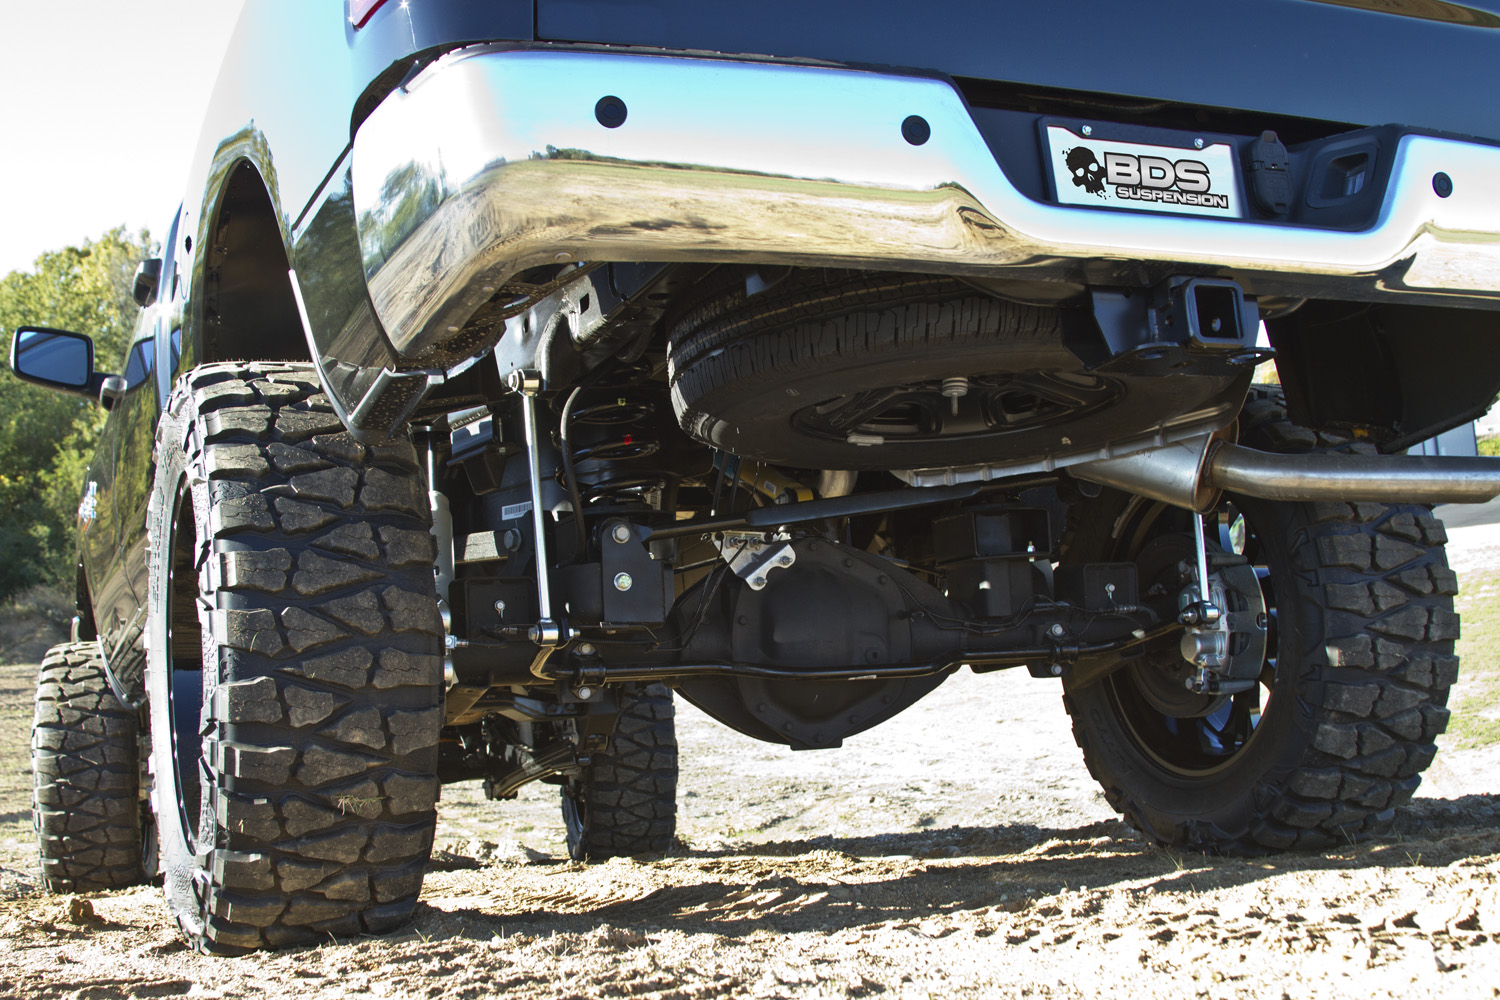 Dodge ram 2500 w 4 lift and 37 tires hi res image dodge_2500_14k_4in_c jpg